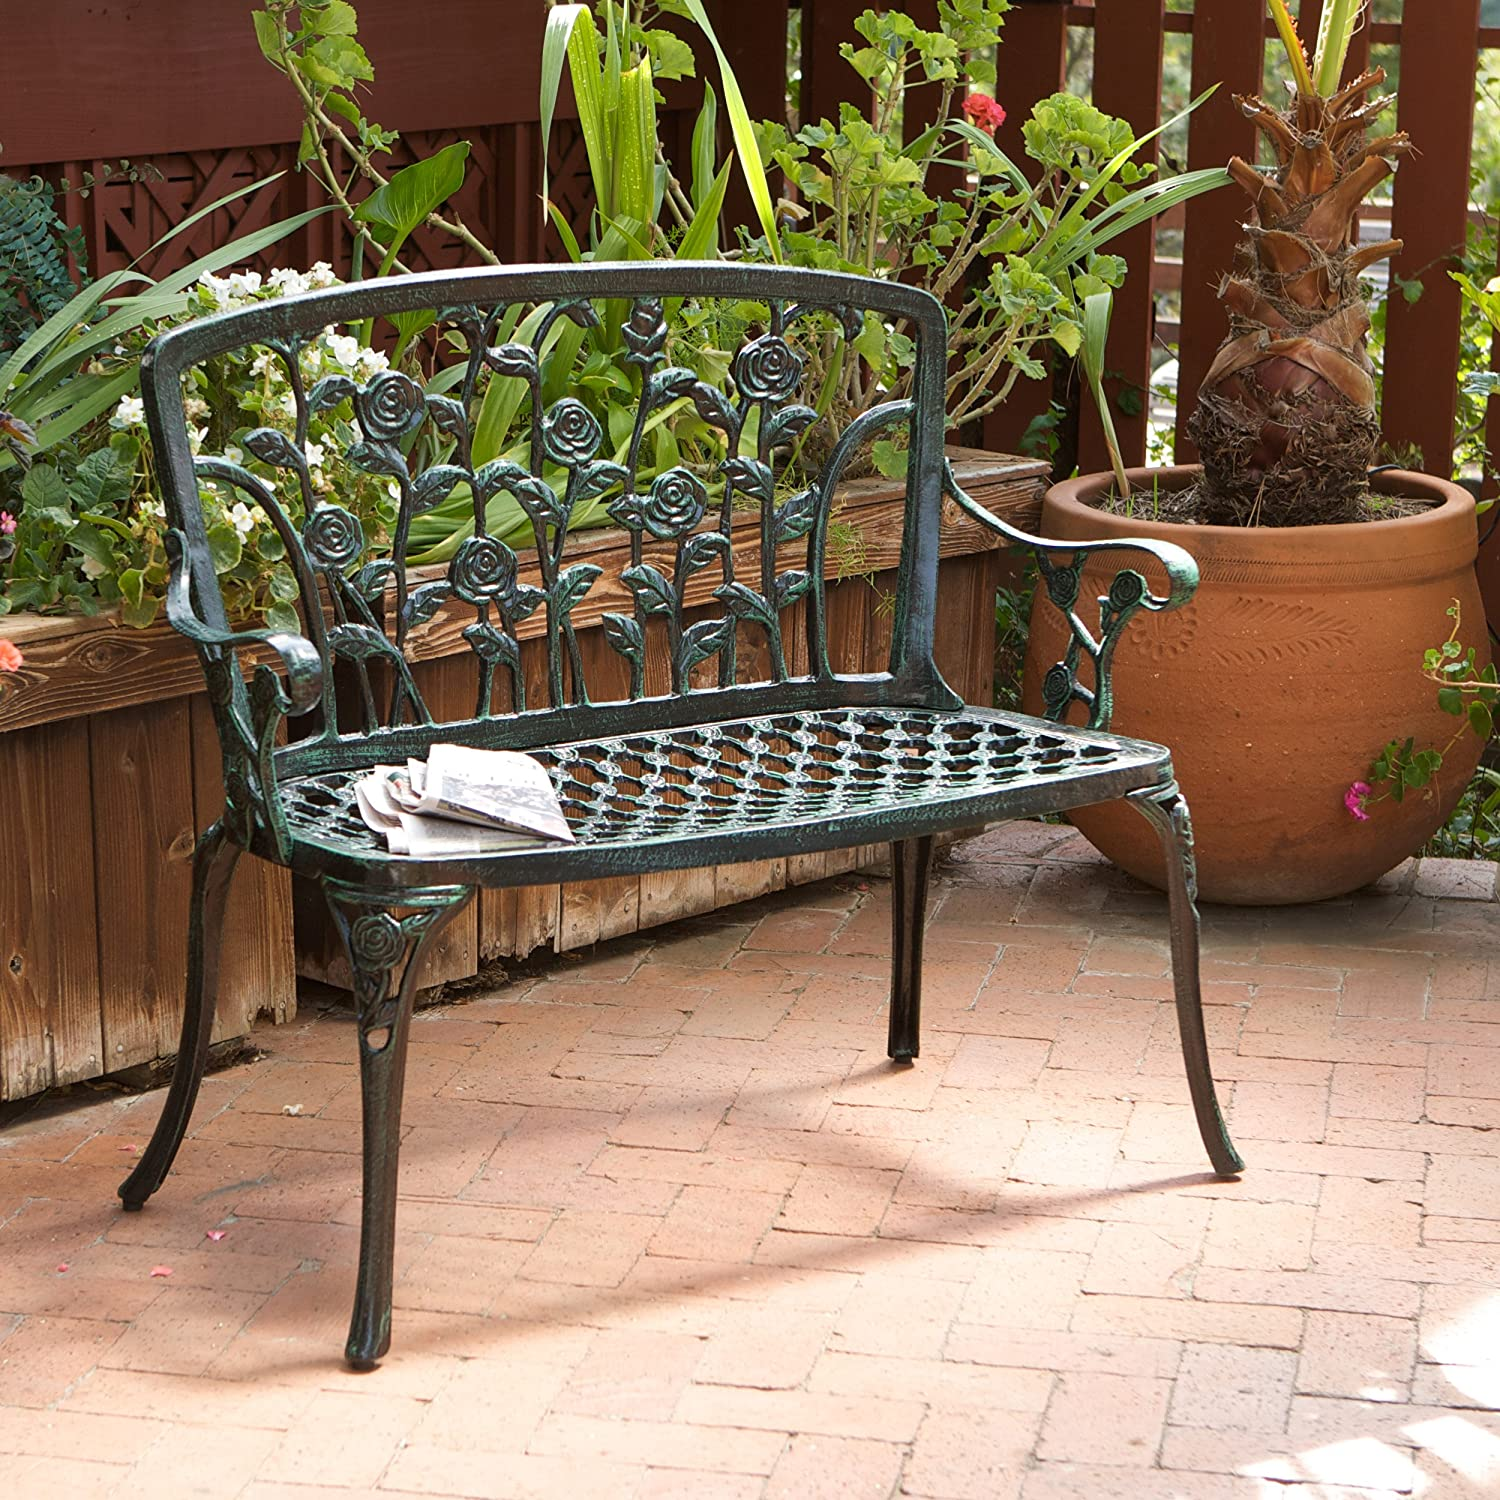 Amazon.com: Best Selling Saint Kitts Cast Aluminum Bench, Green Finish:  Kitchen U0026 Dining